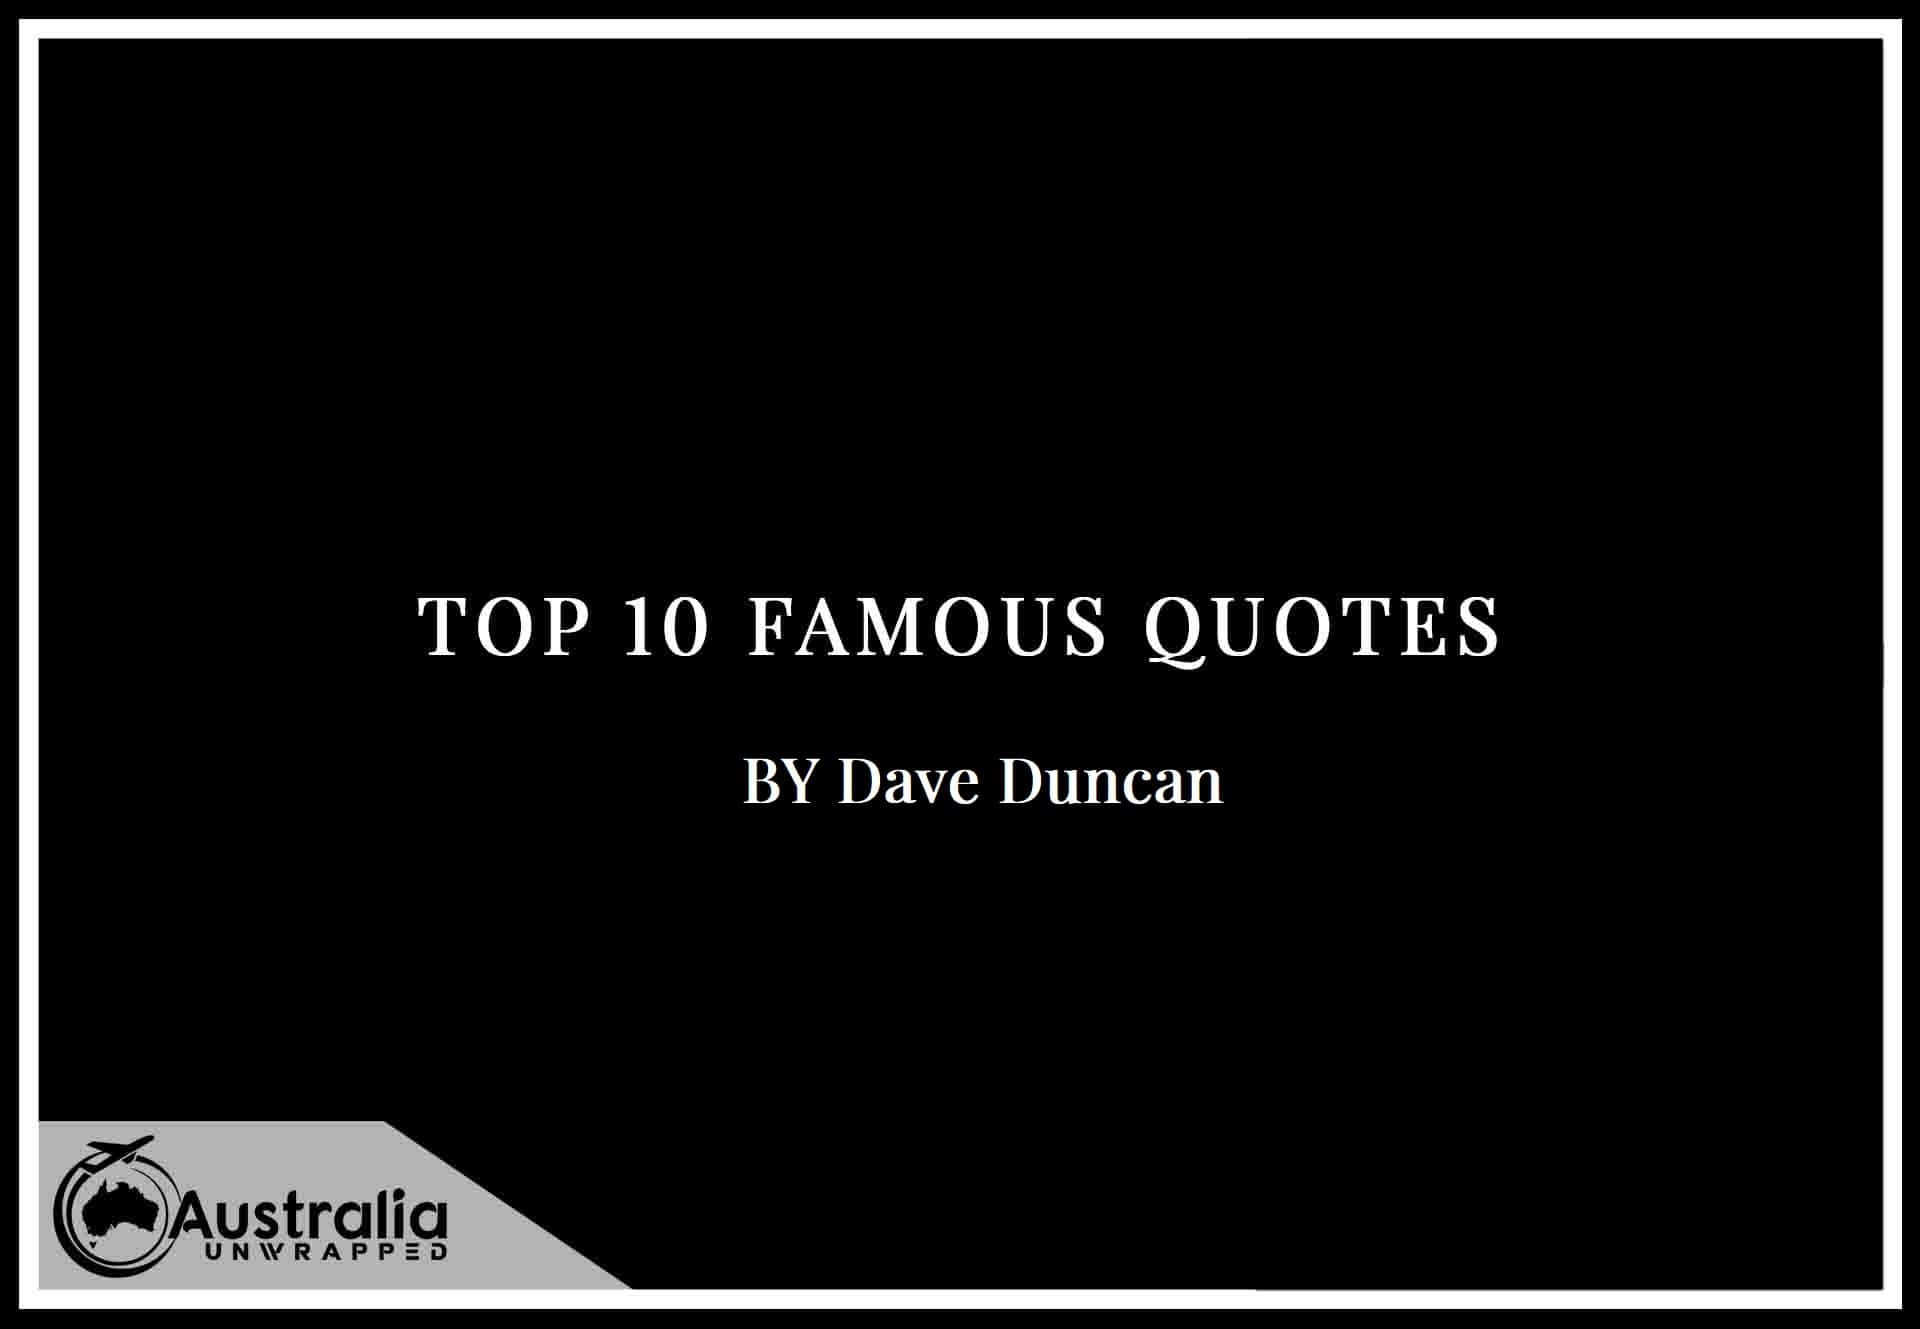 Top 10 Famous Quotes by Author Dave Duncan